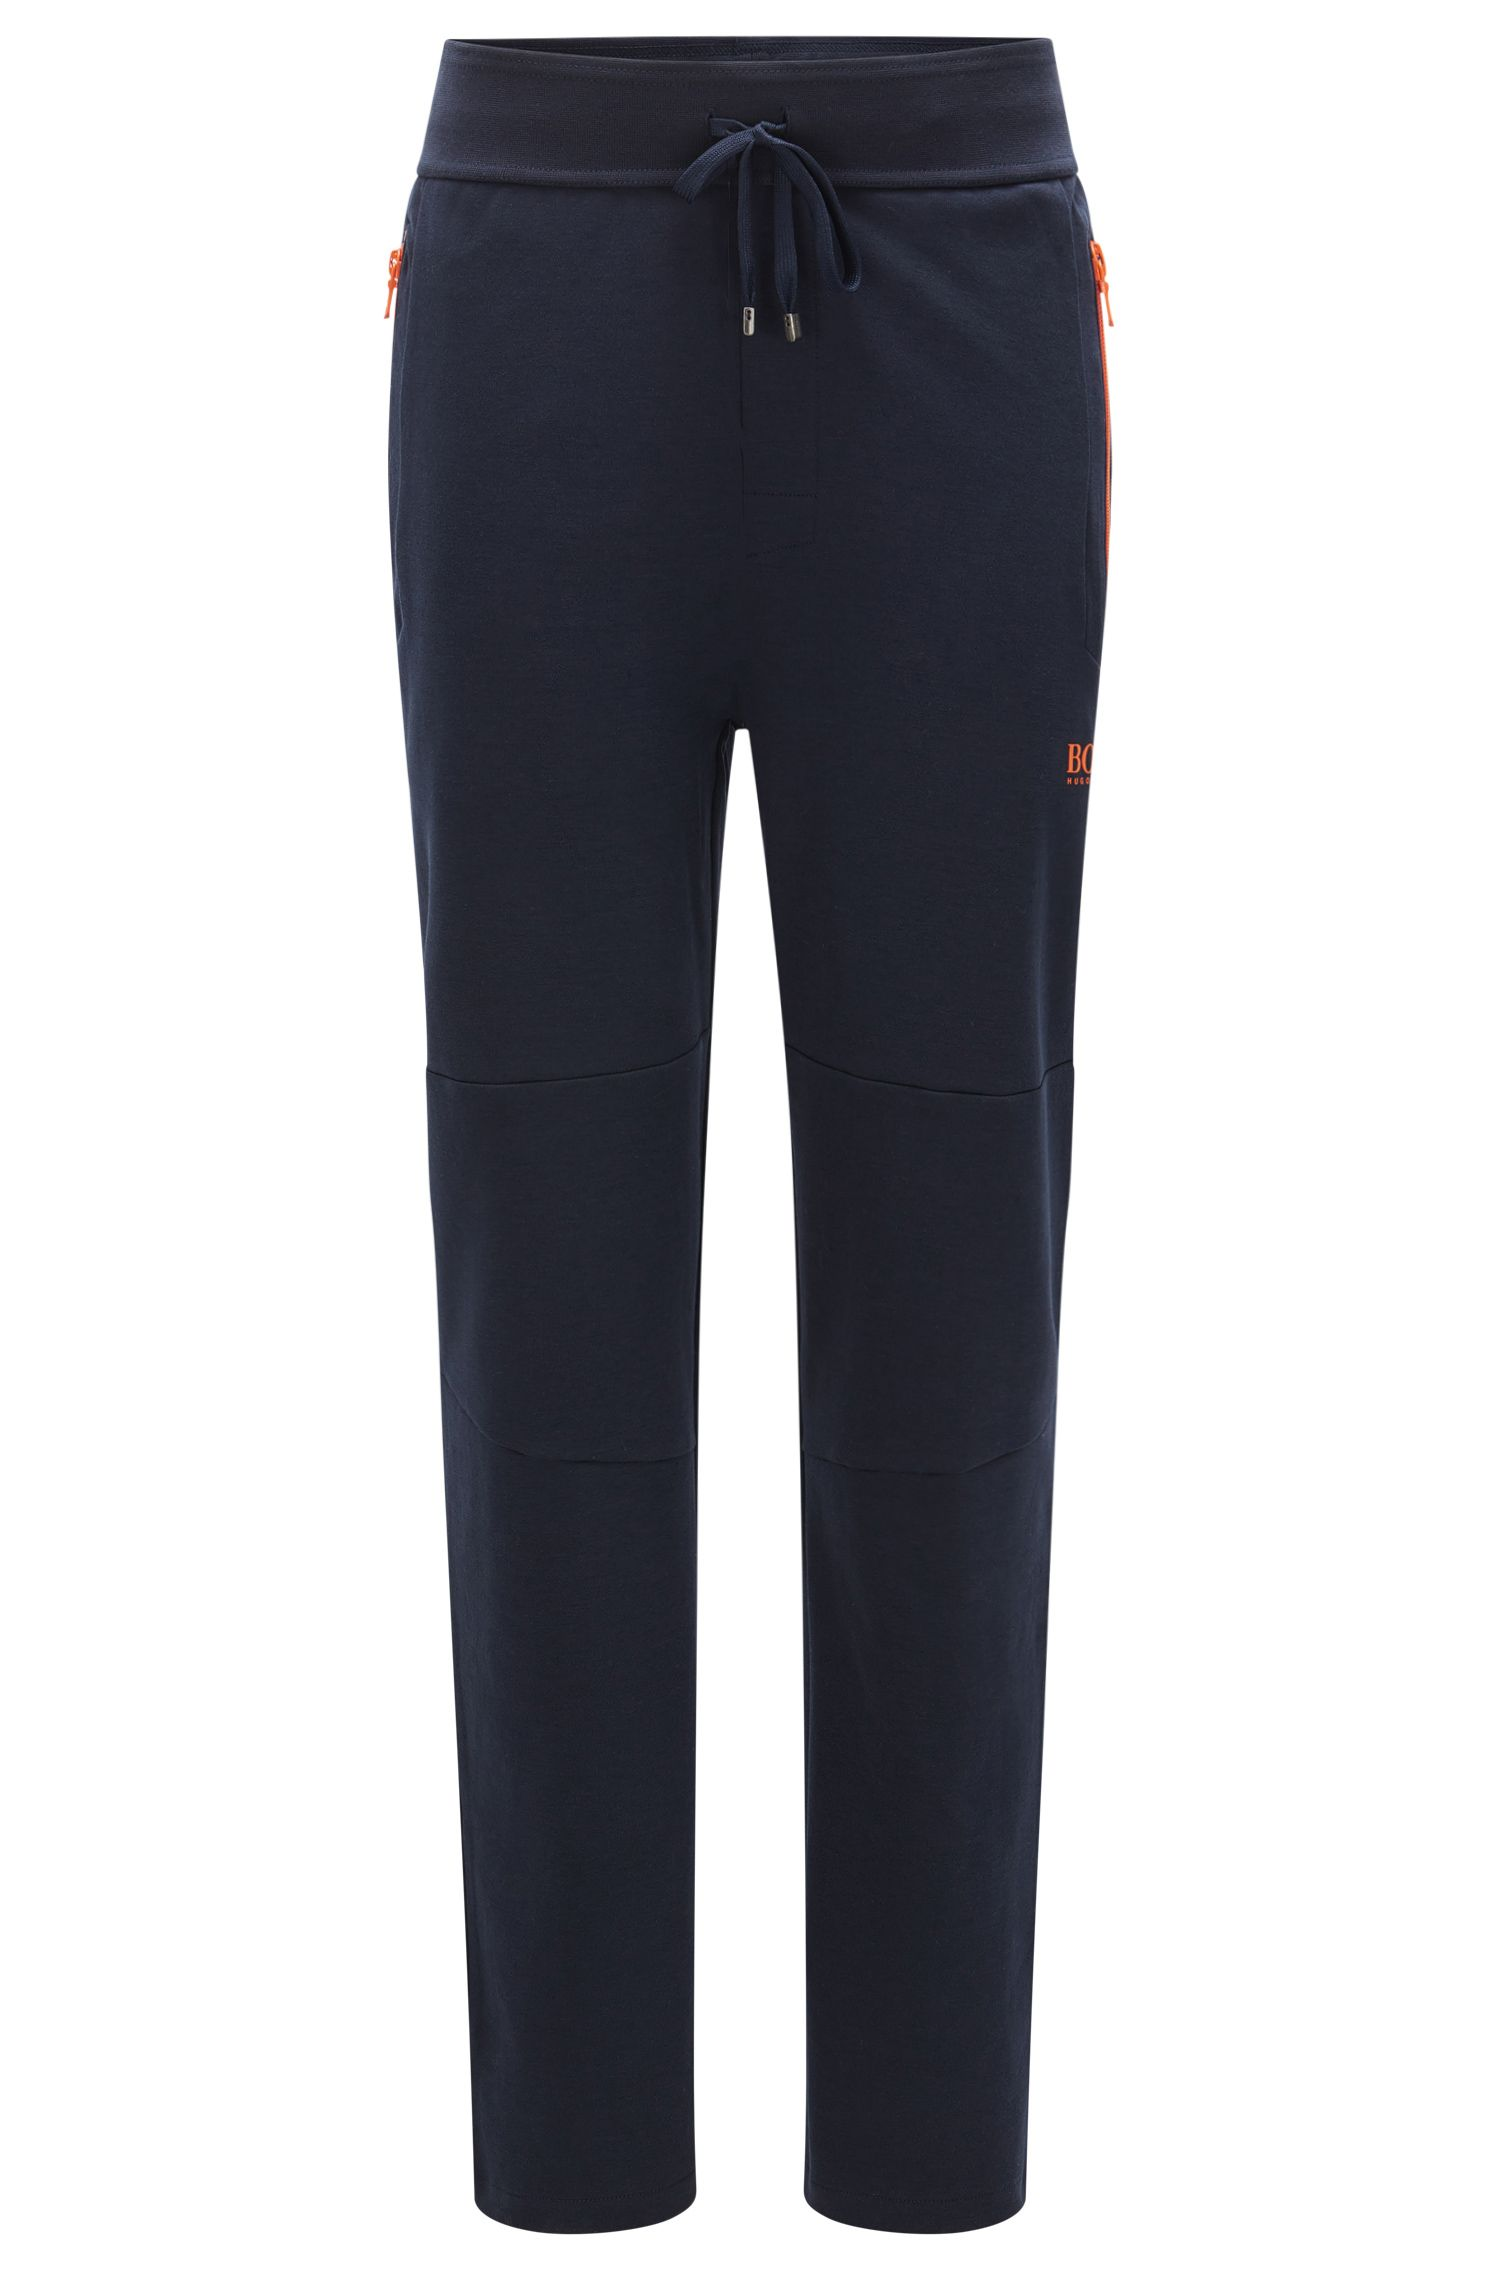 Find the best selection of cheap tracksuit bottoms in bulk here at allshop-eqe0tr01.cf Including men leisure tracksuit and soccer tracksuit sale at wholesale prices from tracksuit bottoms manufacturers. Source discount and high quality products in hundreds of categories wholesale direct from China.